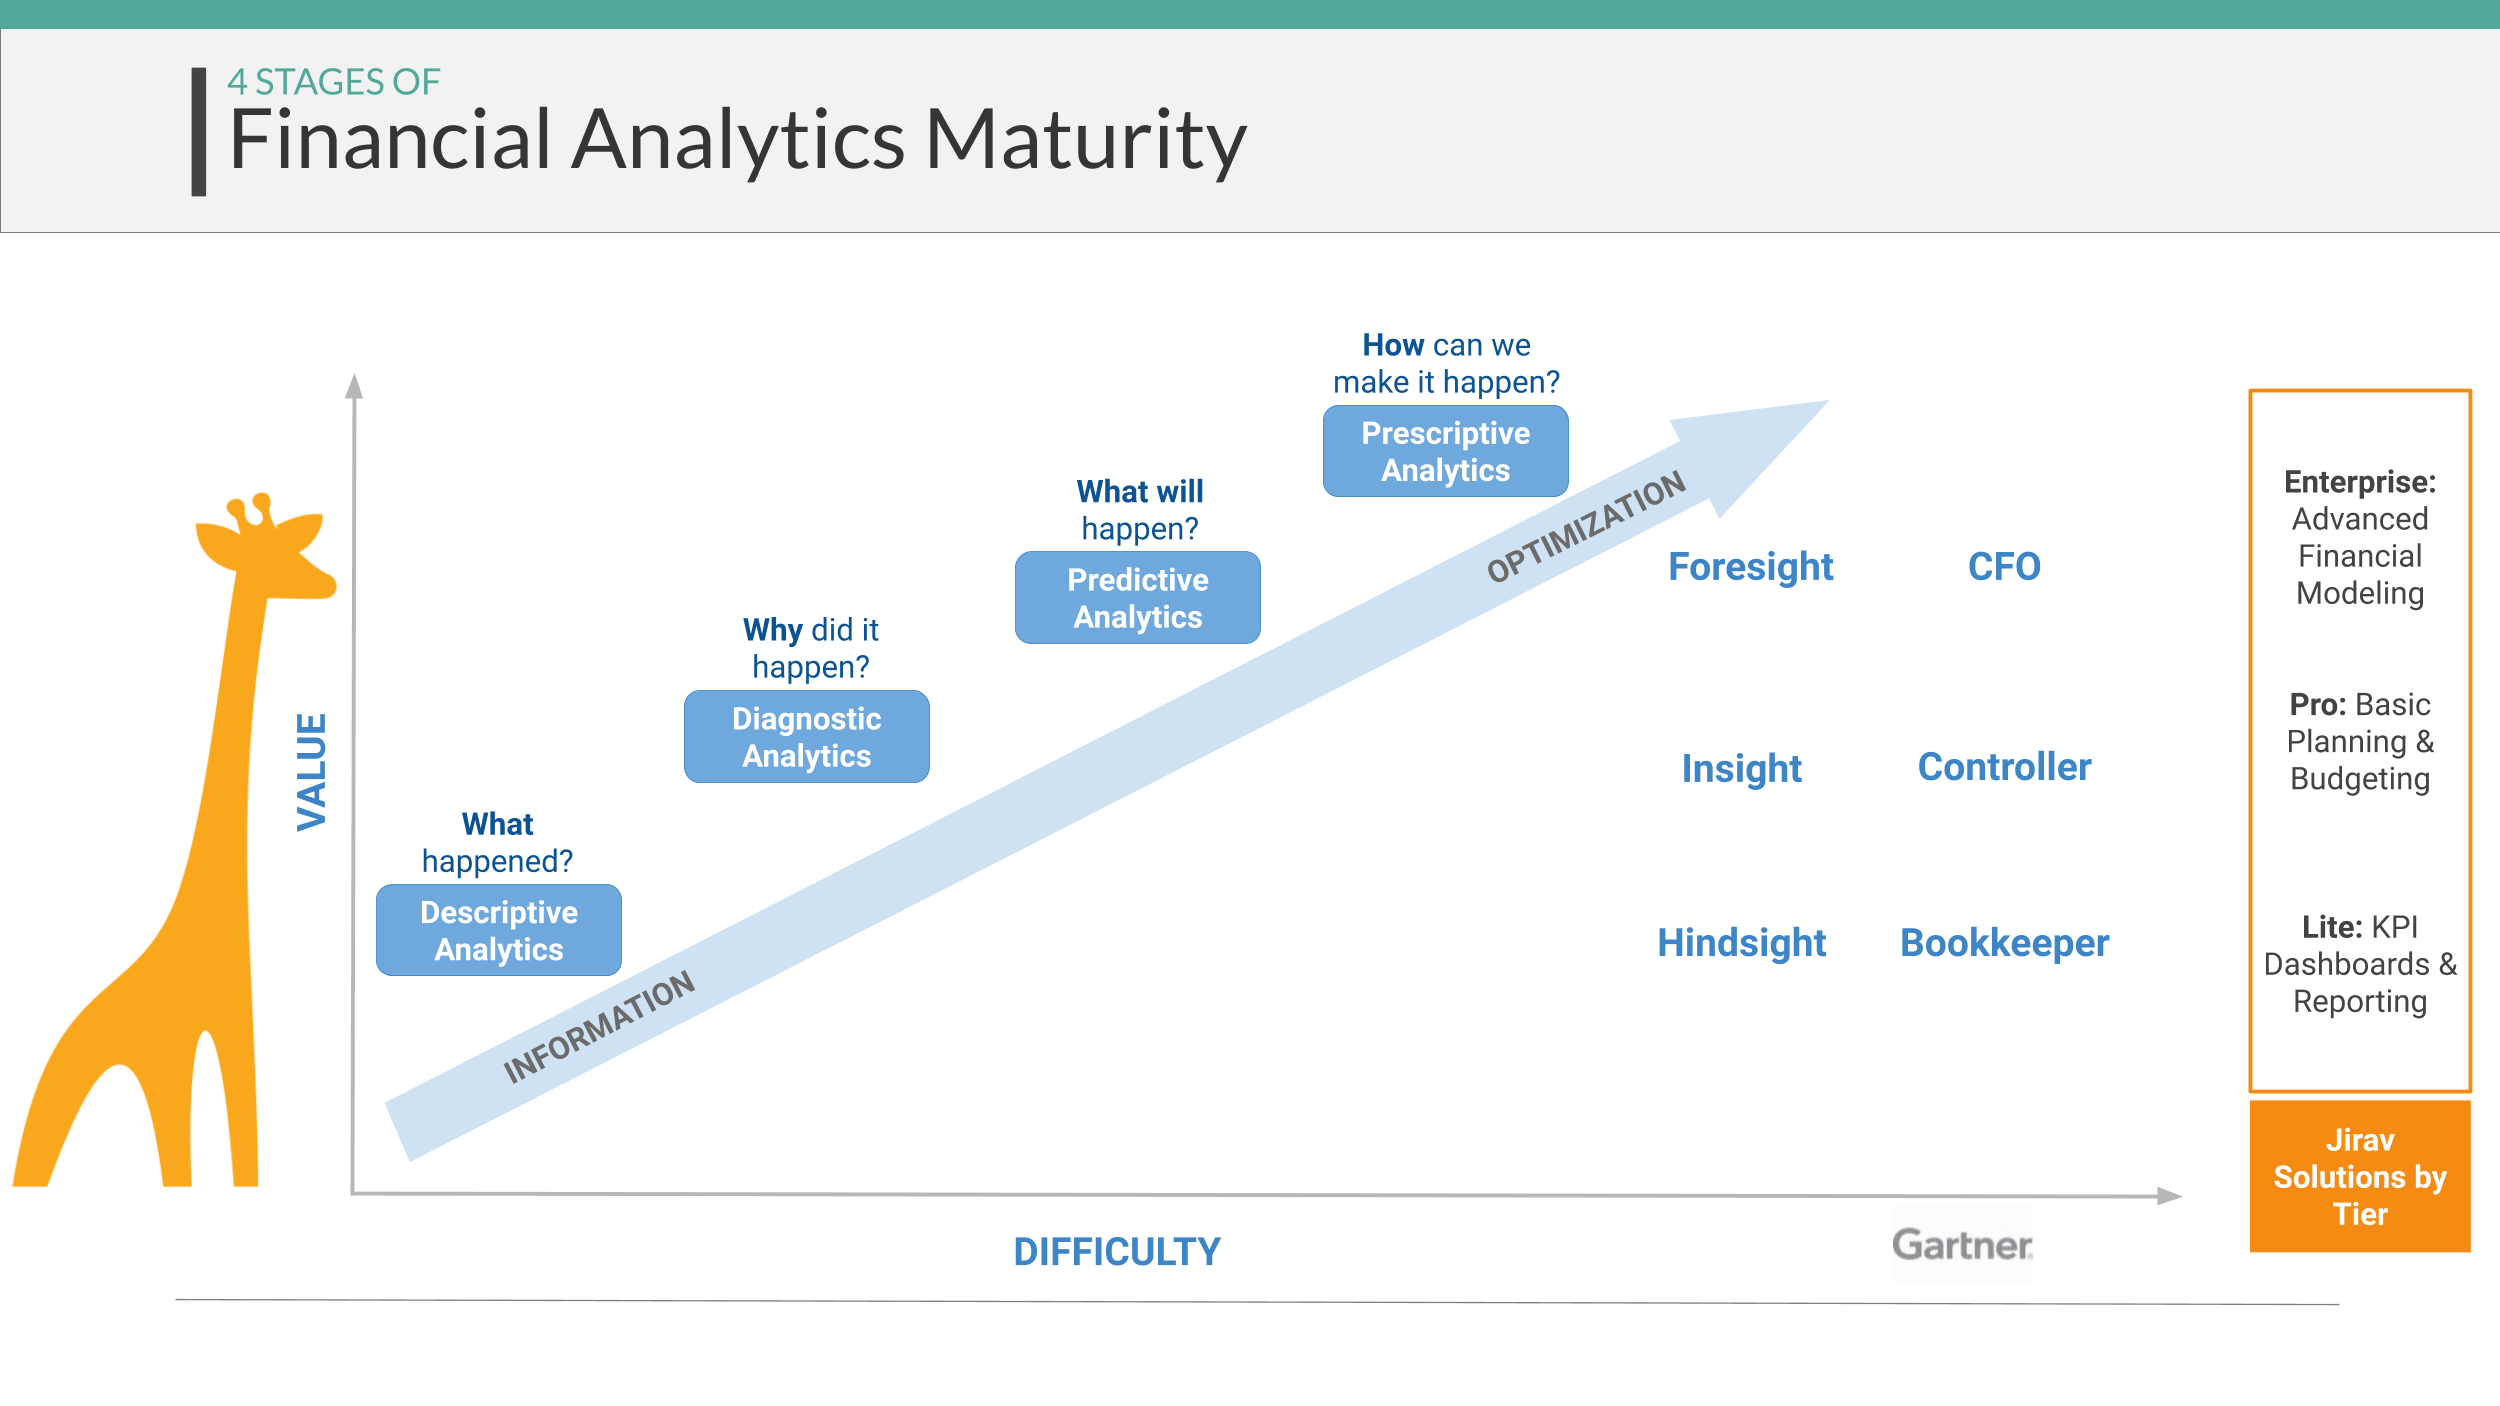 How Jirav moves firms up the four stages of Financial Analytics Maturity